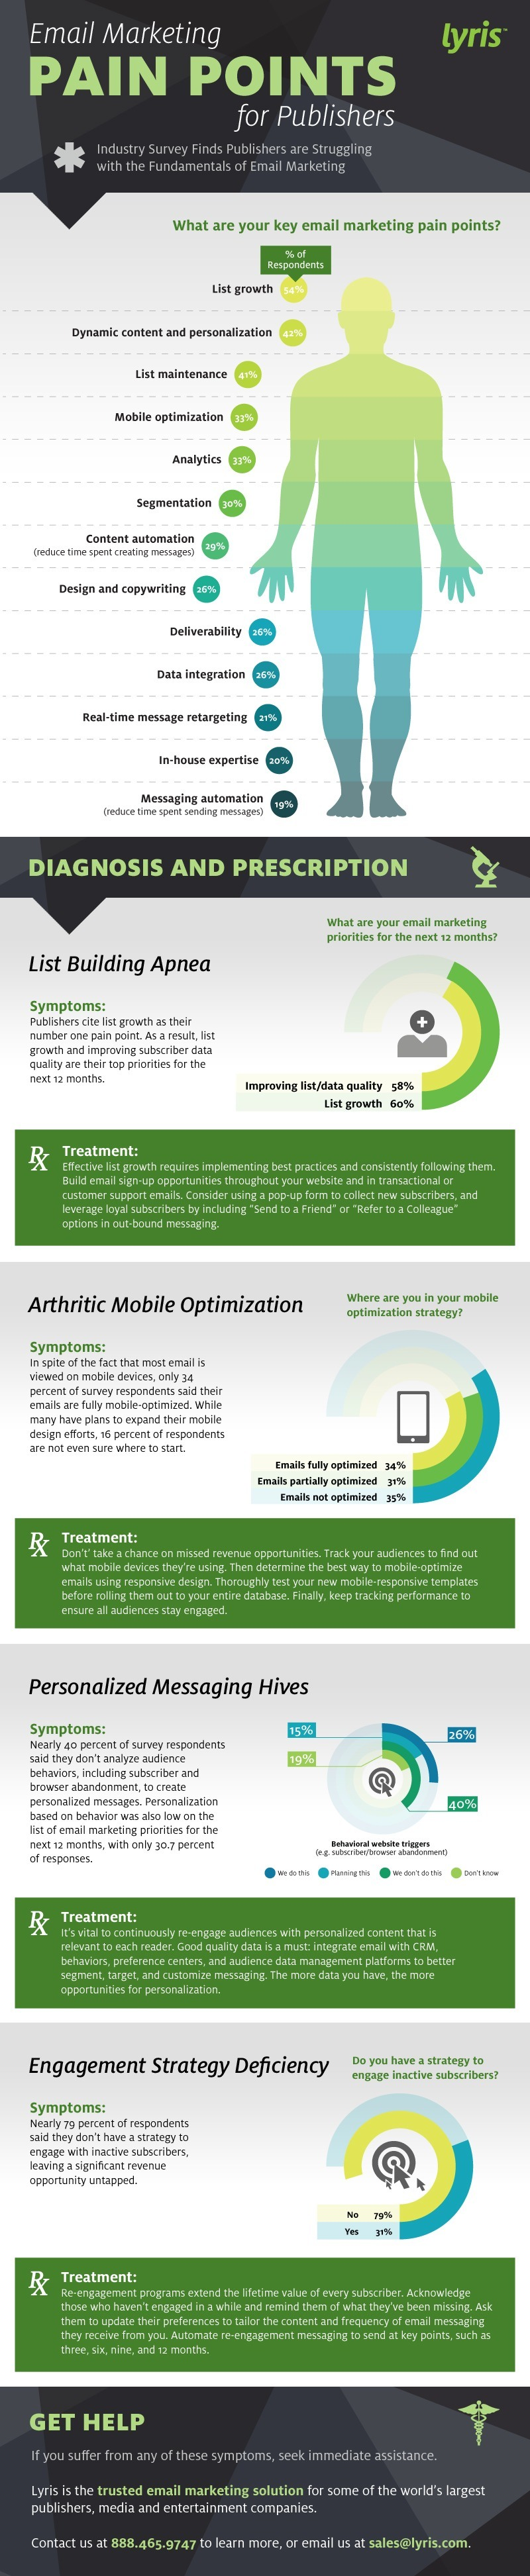 email-pain-points-L-infographic-lyris-181114